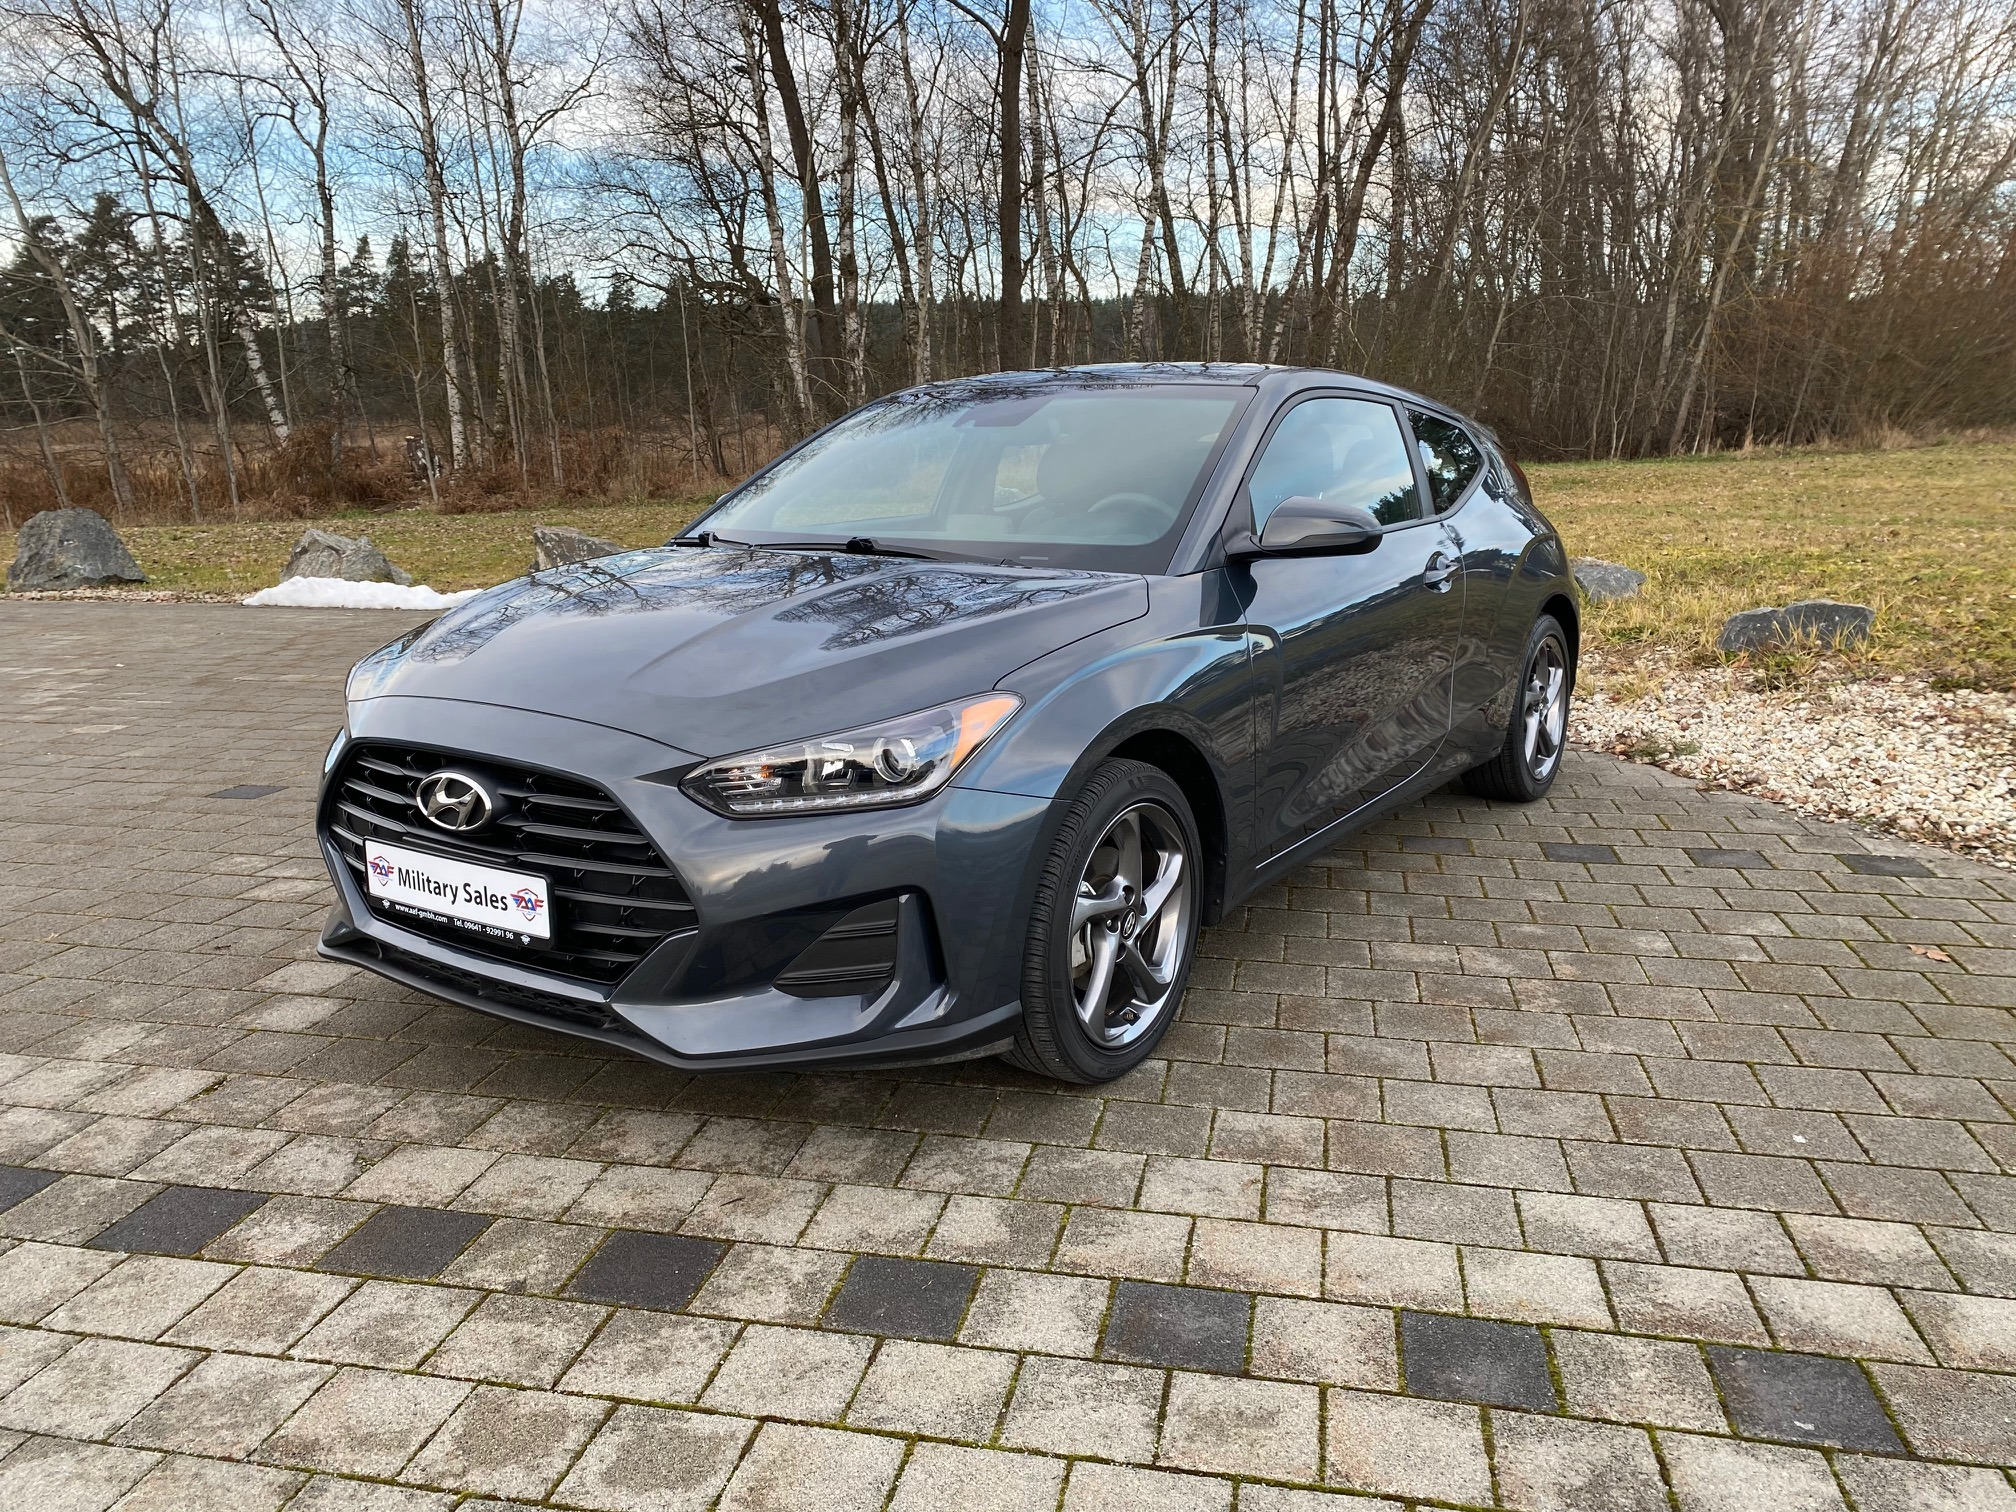 2019 Hyundai Veloster Premium</br>as low as </br>$159 per paycheck  Copy